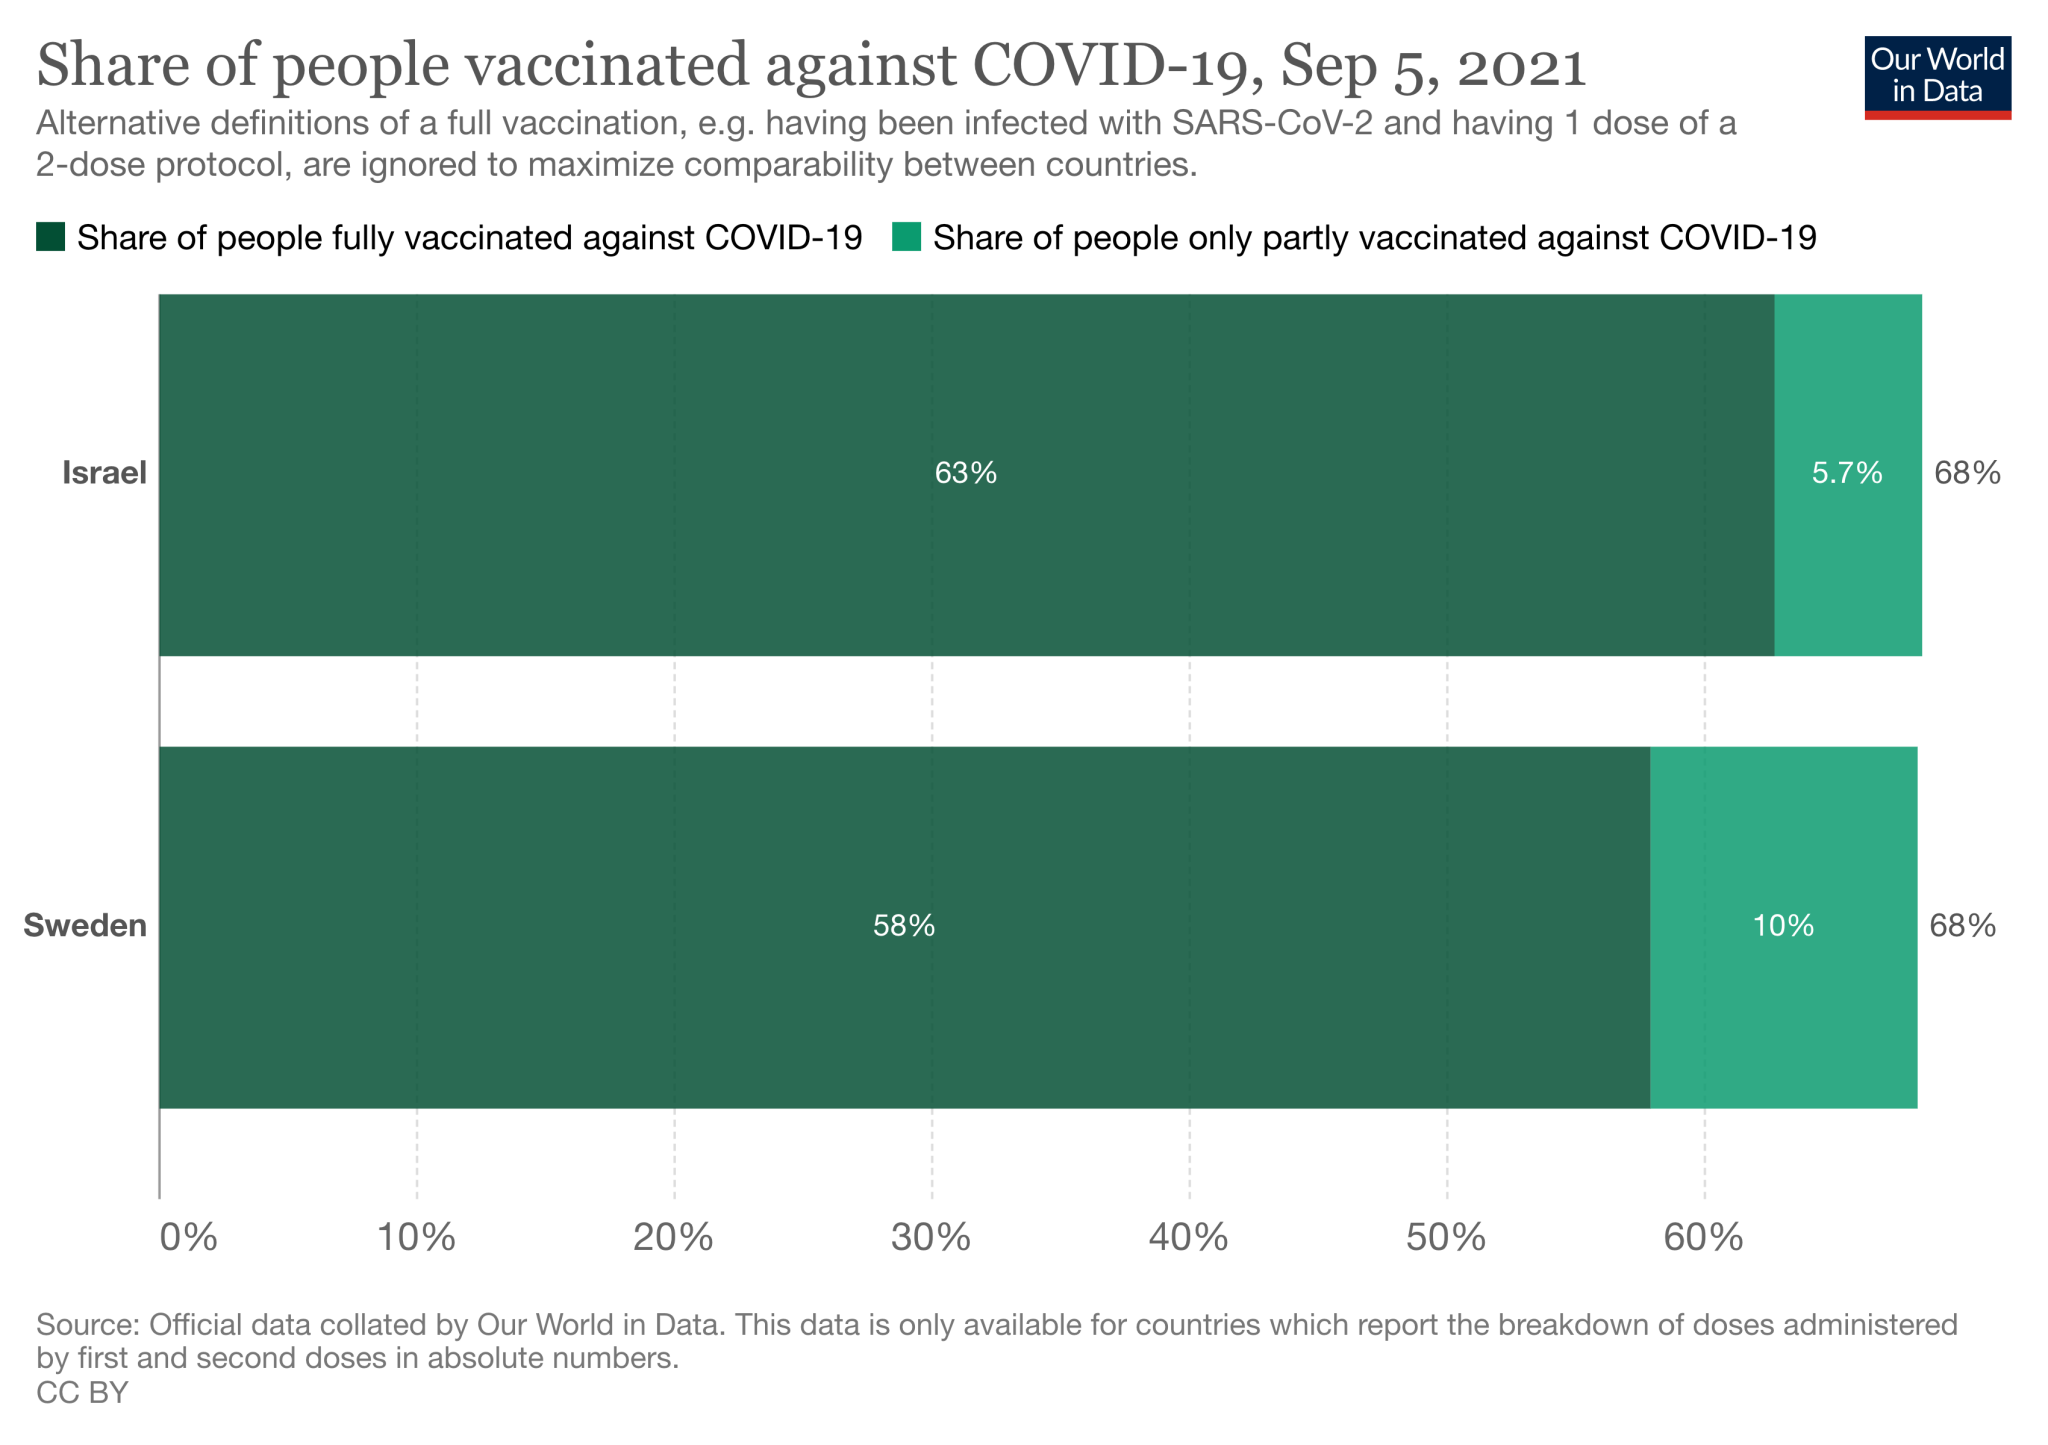 Percentage of people vaccinated with one or two doses in Israel and Sweden